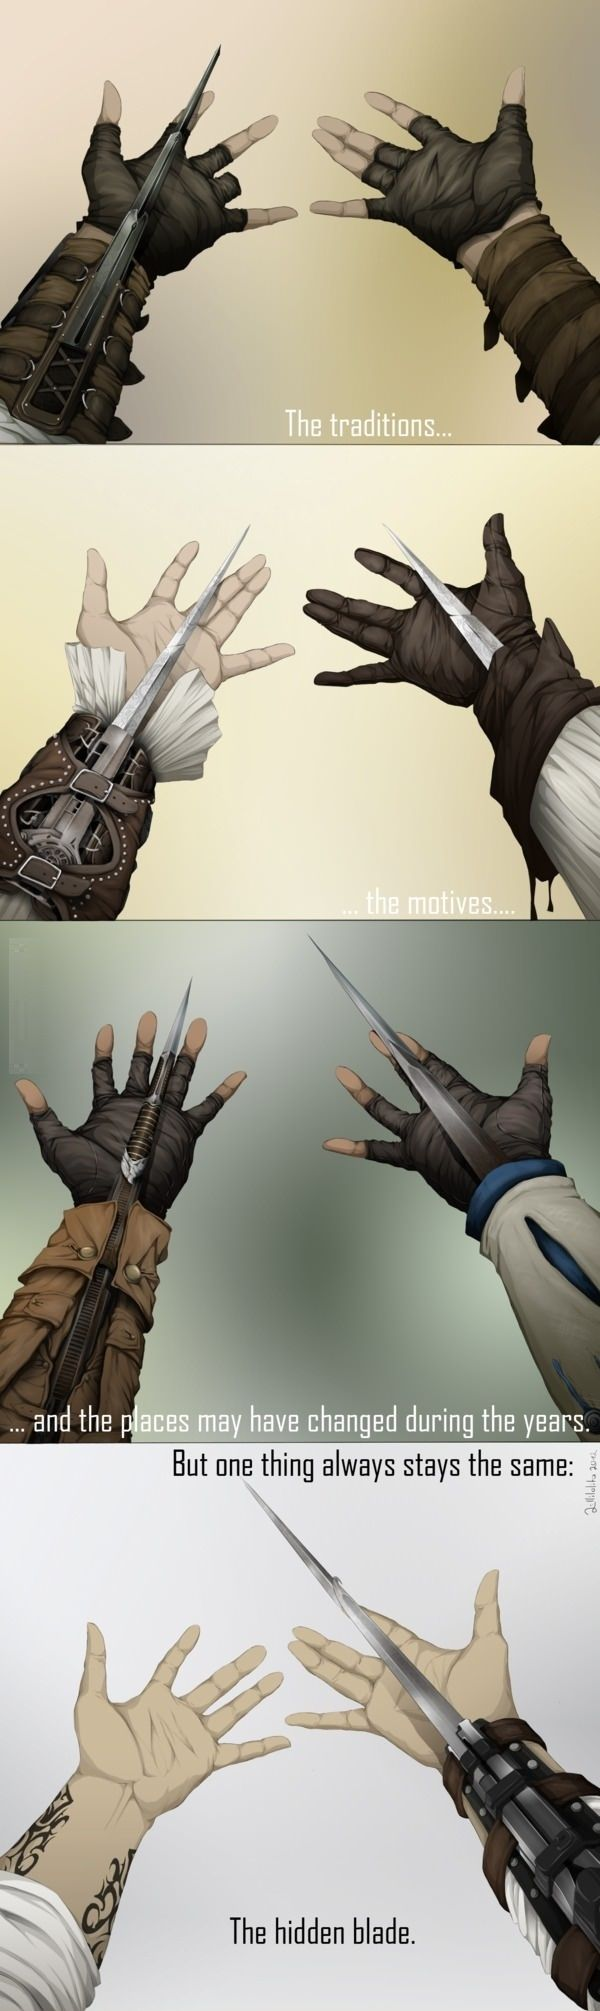 Hidden Blade Tribute from Assassin's Creed                   The traditions, the motives and the places may have changed during the years. But one thing always stays the same: The hidden blade